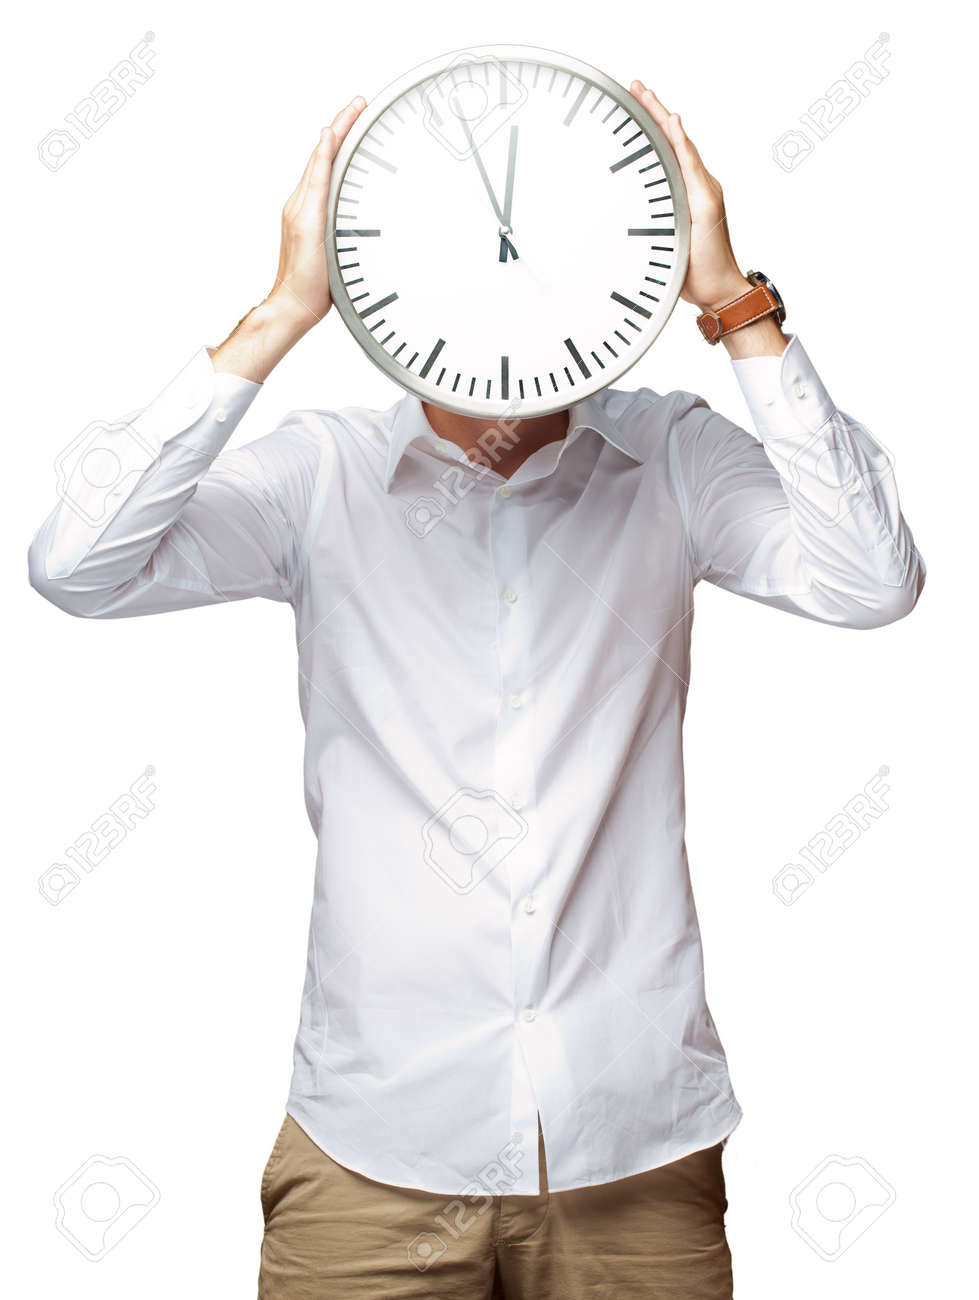 Young Man Holding Big Clock Covering His Face On White Background Stock Photo - 15851179